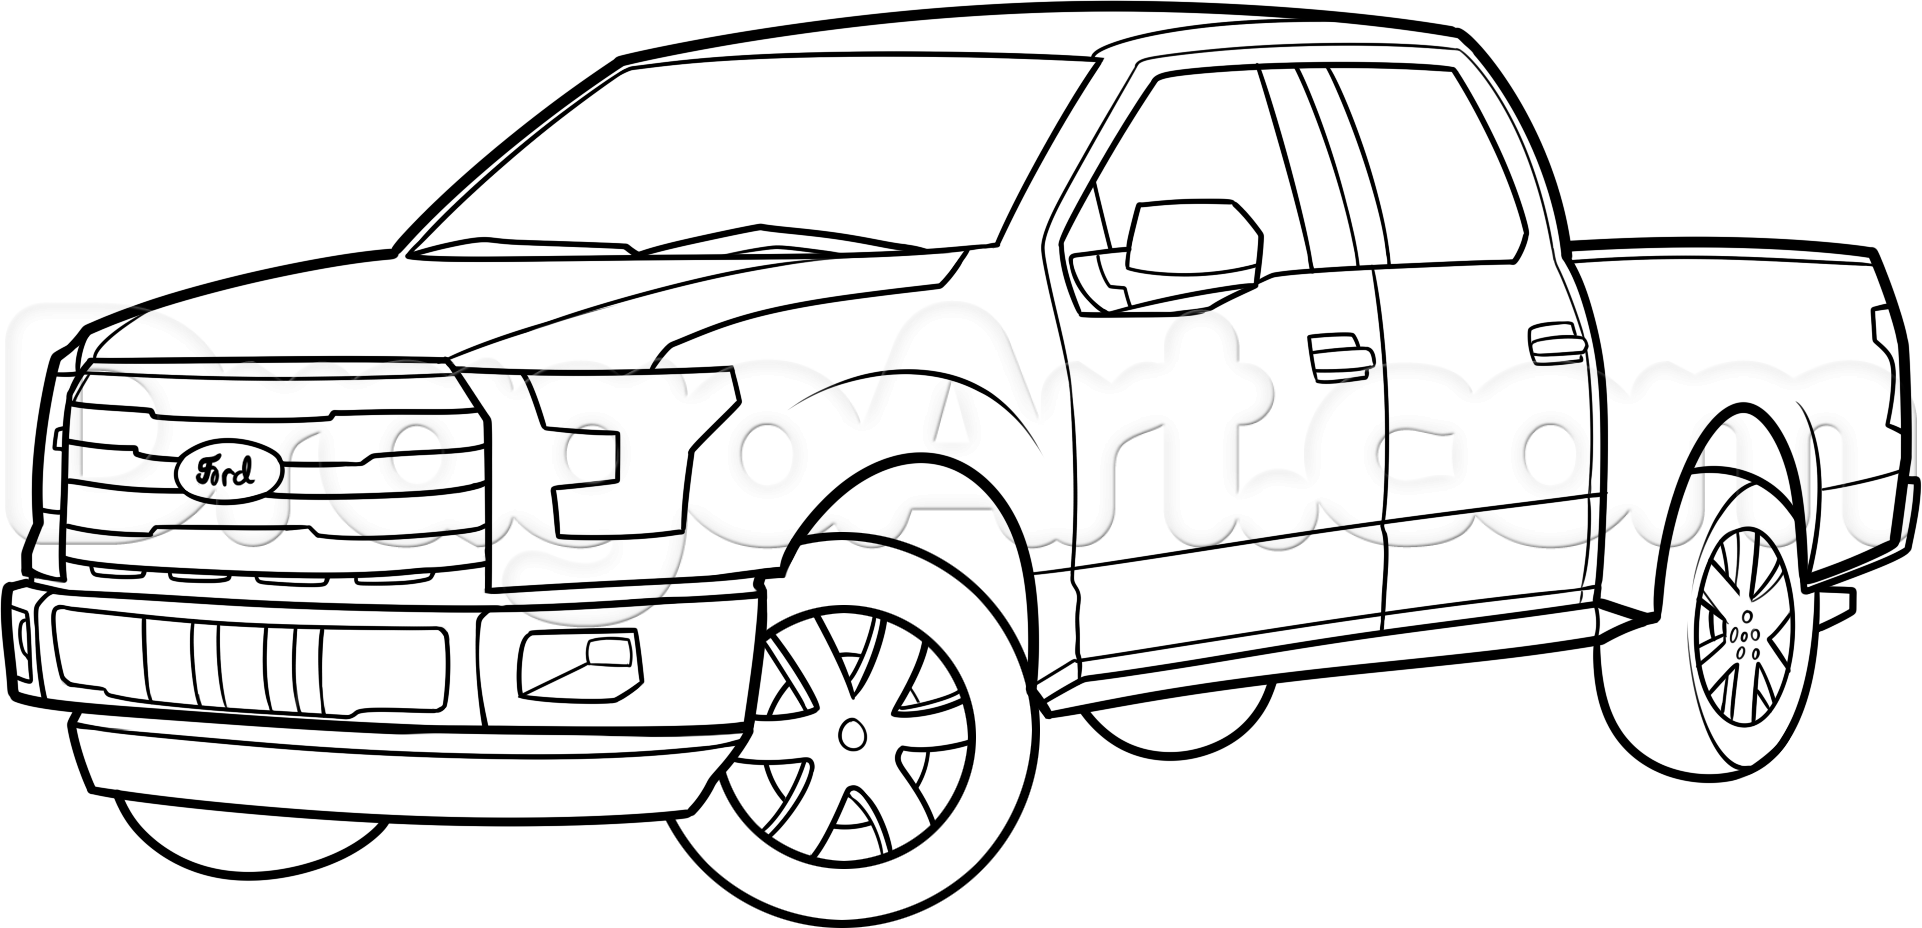 toyota car coloring pages coloring and drawing super car toyota fsx coloring page coloring car toyota pages